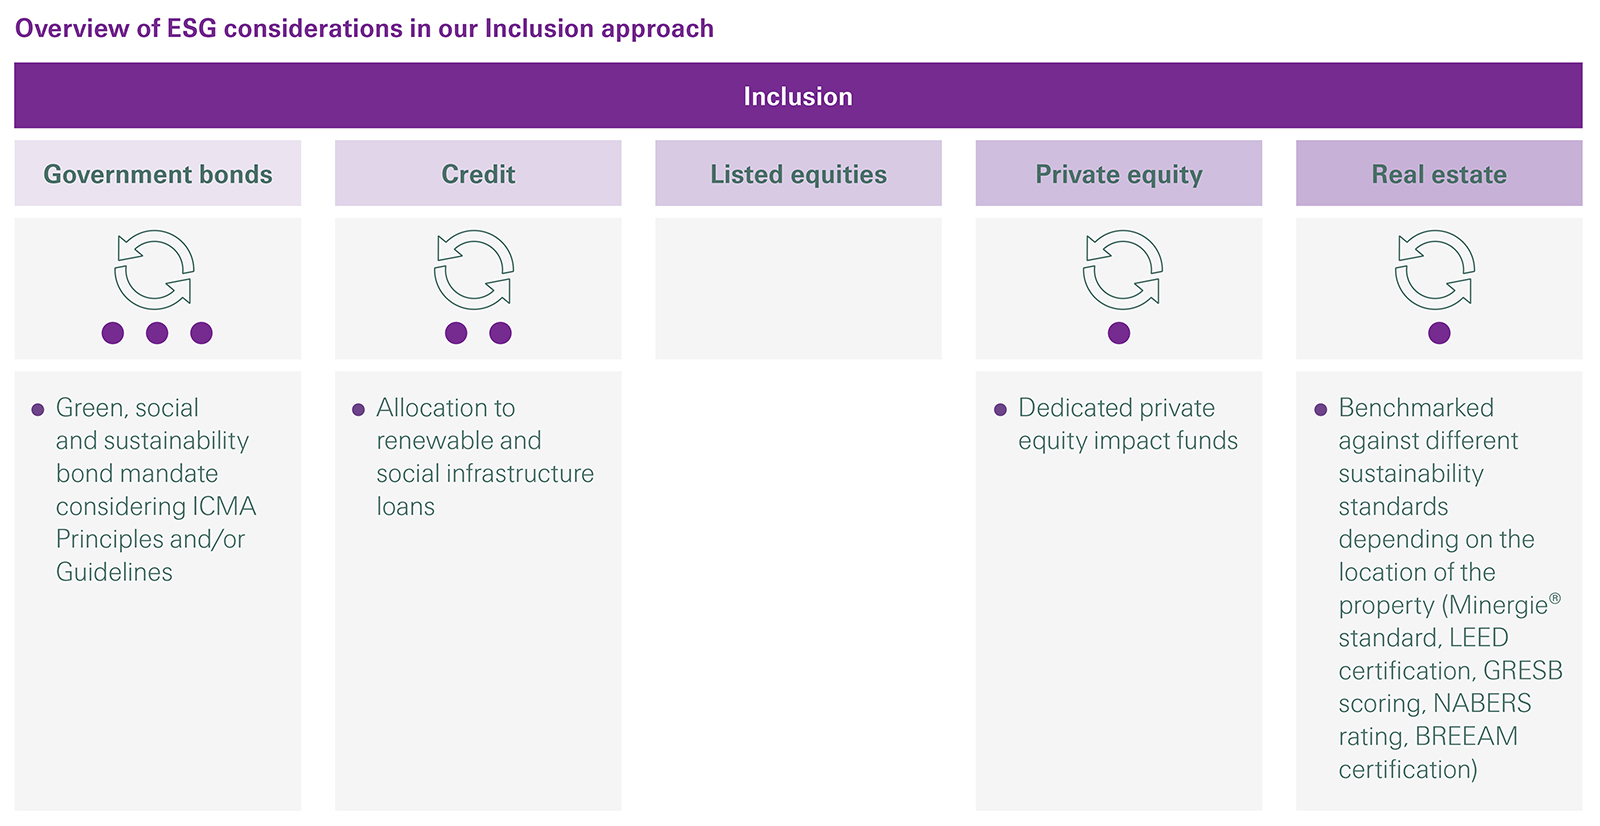 Overview of ESG considerations in Swiss Re Responsible Investing Inclusion approach